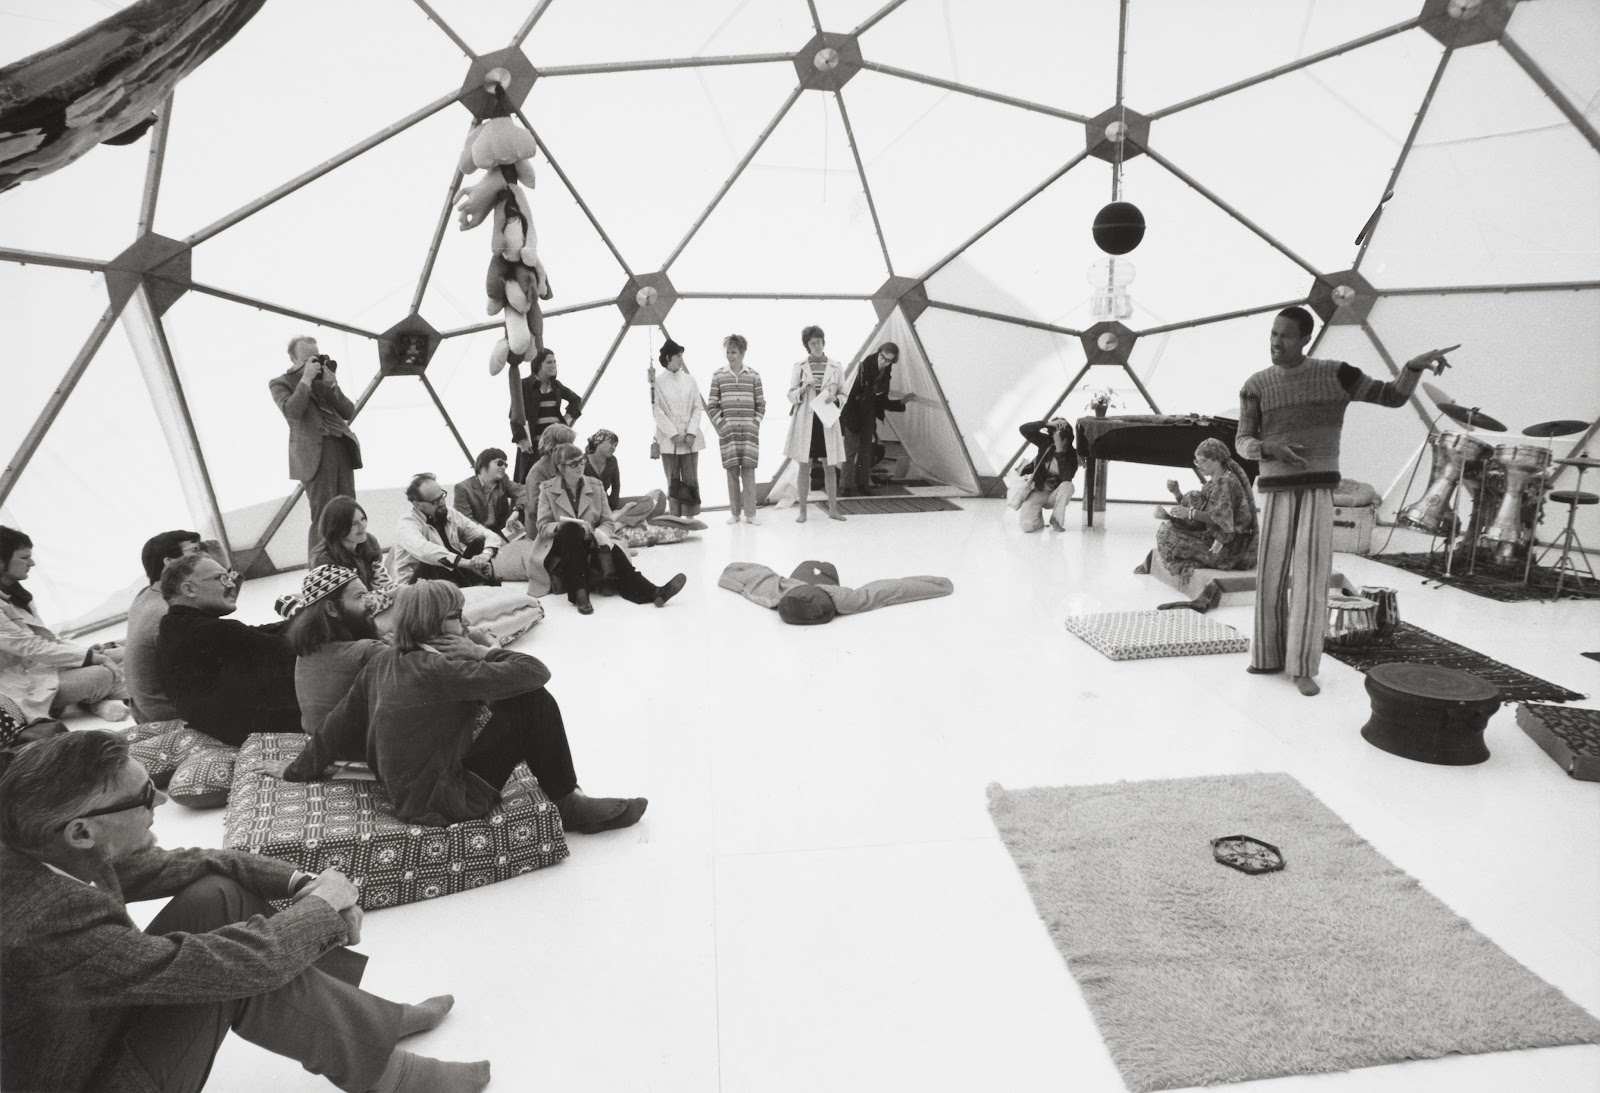 Don Cherry in the geodesic dome at  Utopias and Visions, 1871-1981 (photo by Bengt Berger)